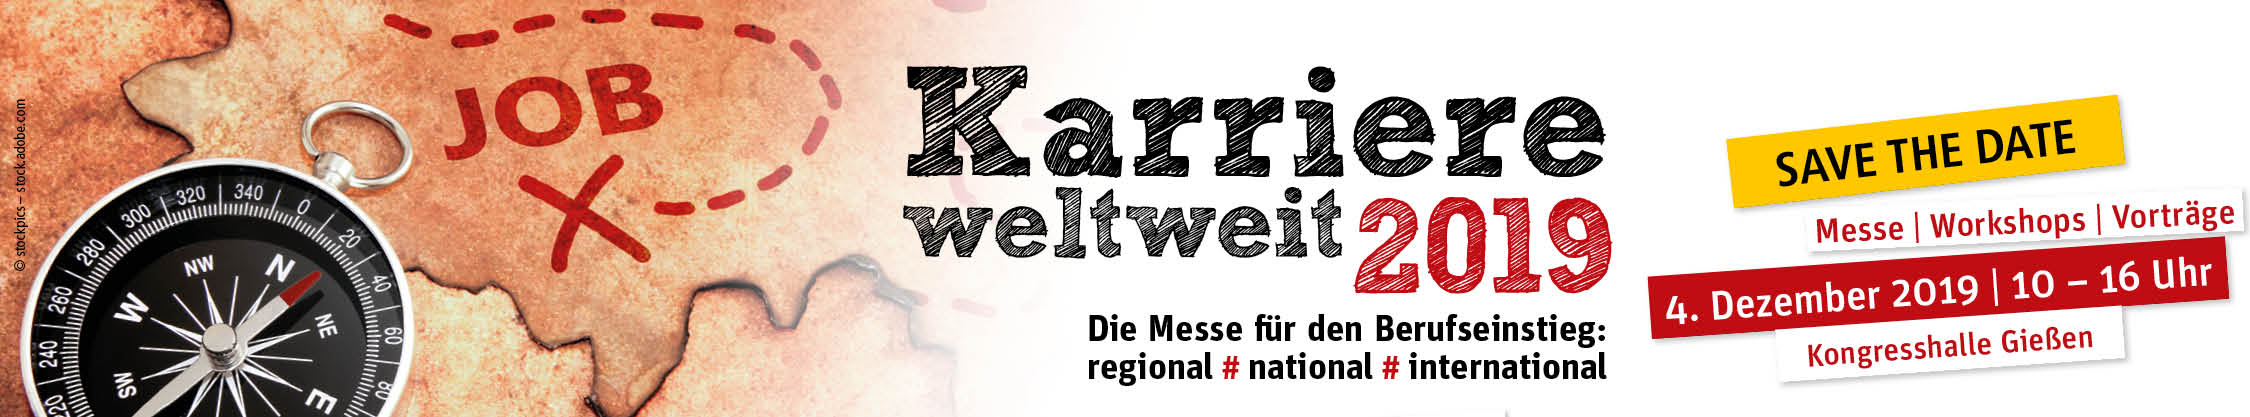 headertitel